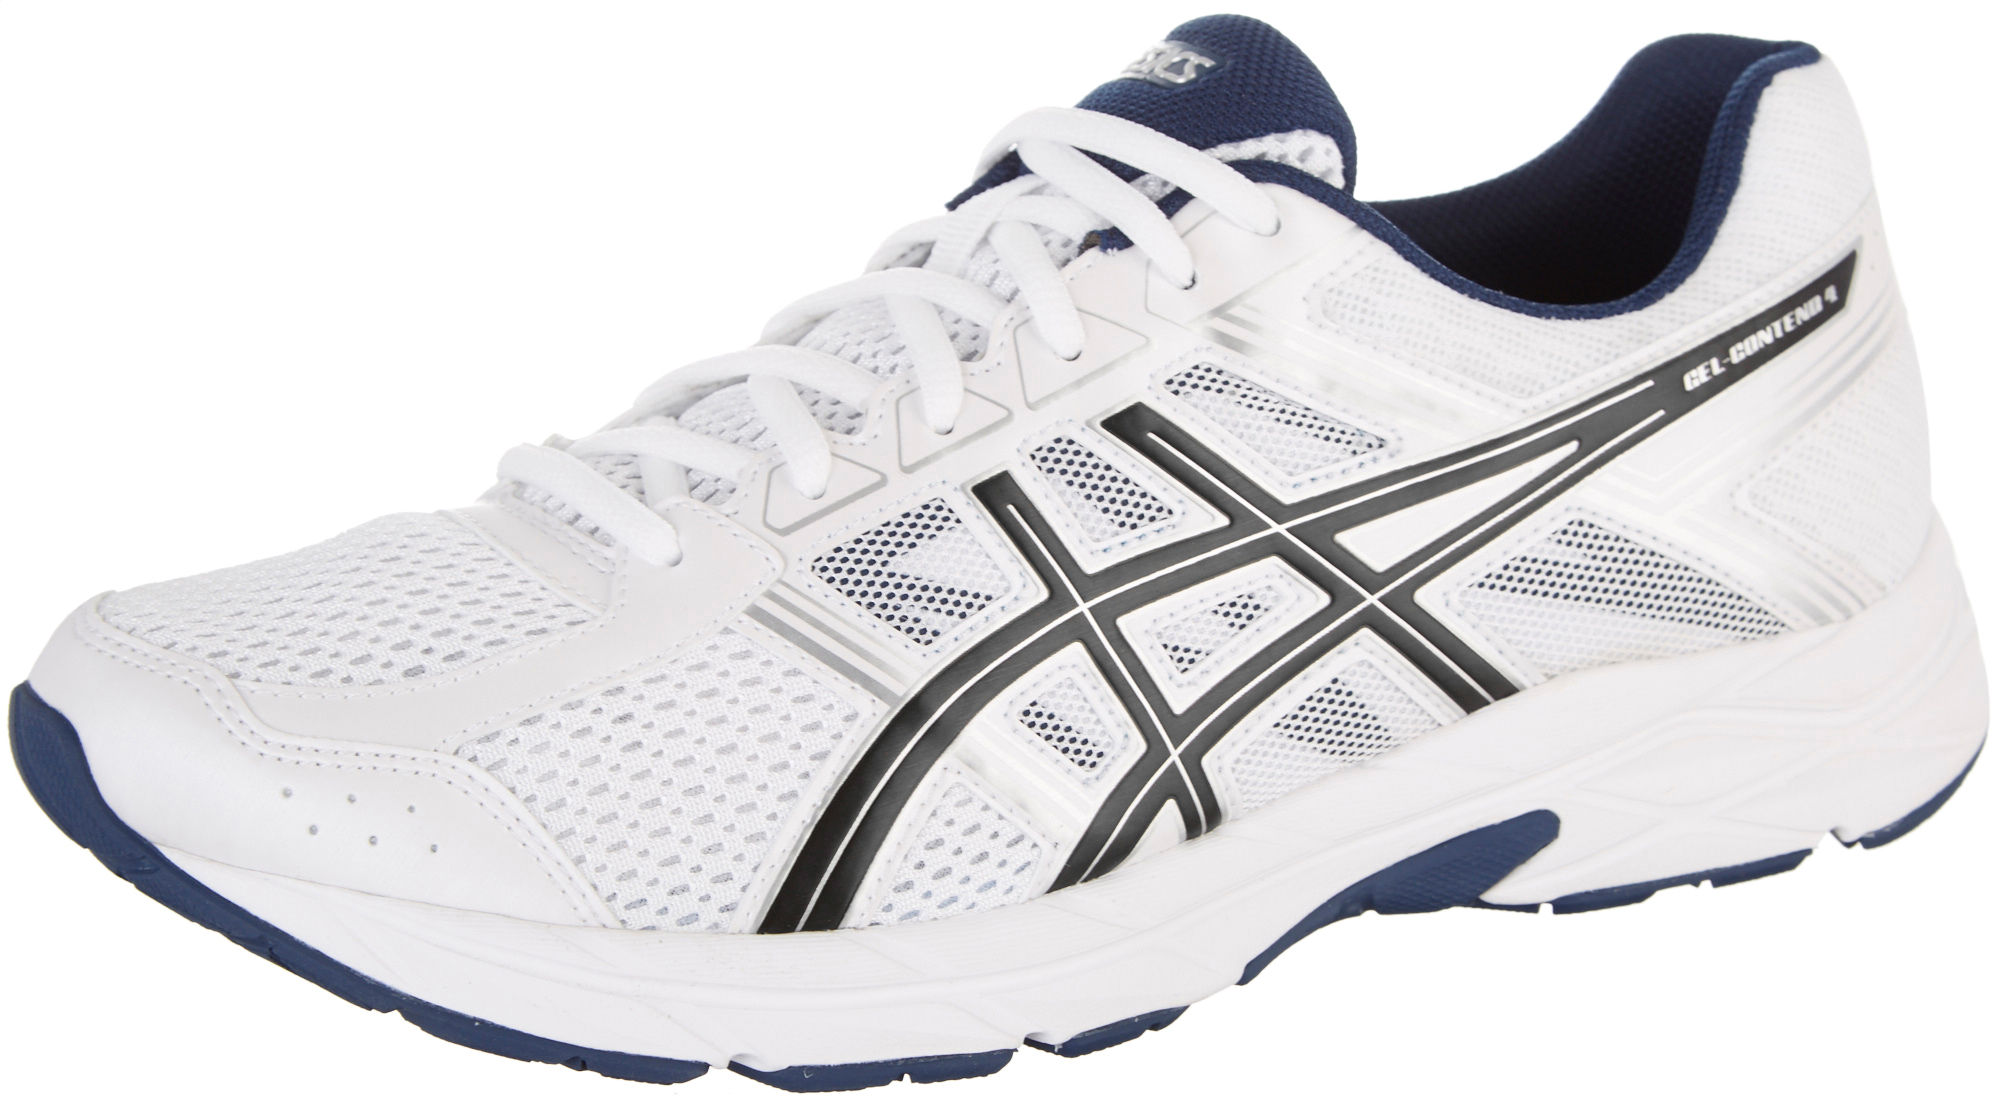 ASICS GEL-Contend 4 Running Shoe(Men's) -Silver/Classic Blue/Black